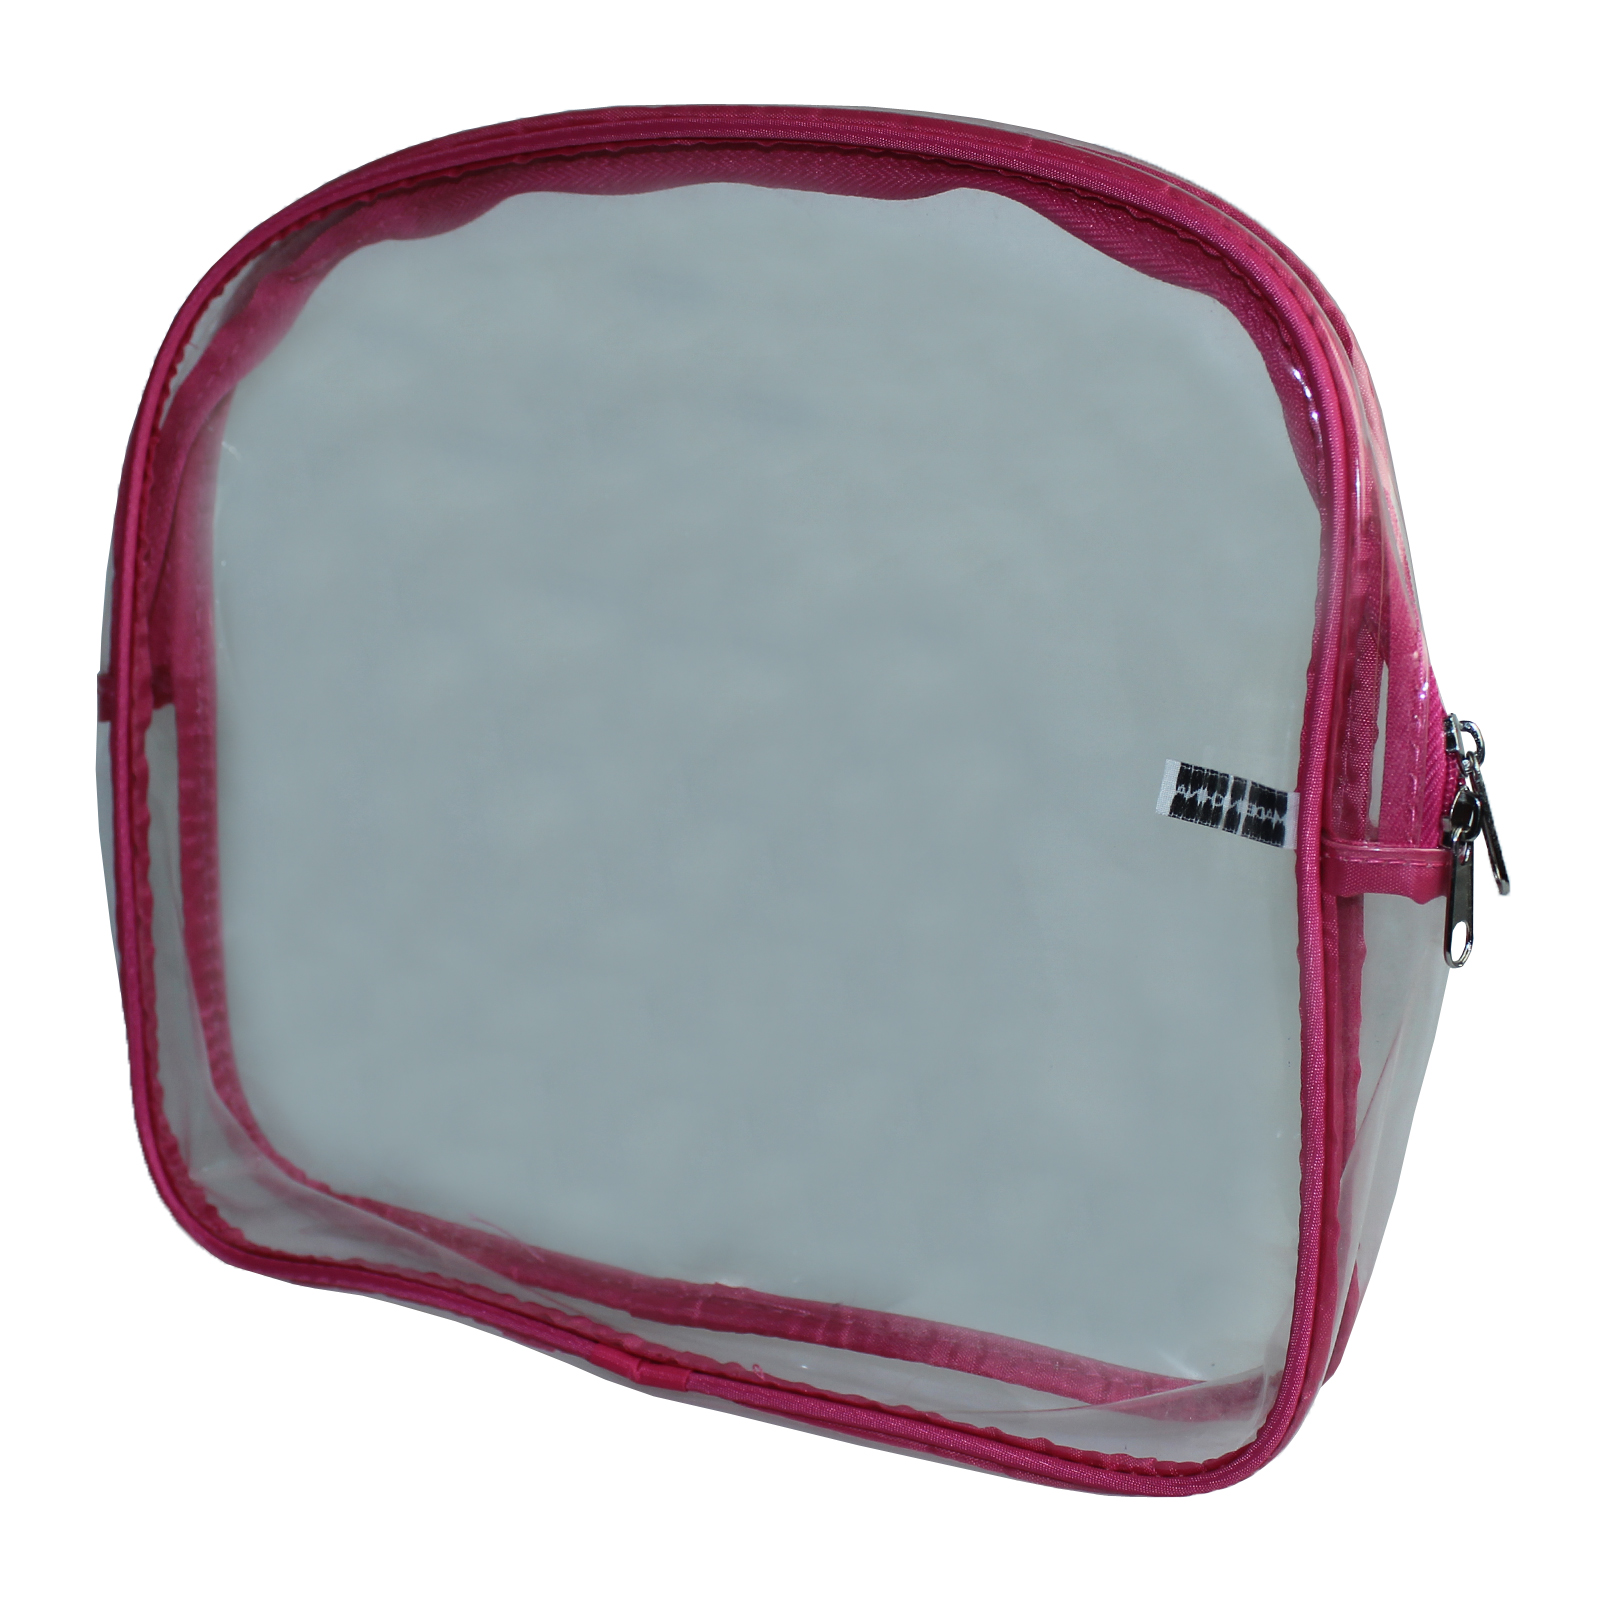 Clear Plastic Zip-Sealed Toiletry Cosmetics Make Up Travel Bag - Pink Enlarged Preview